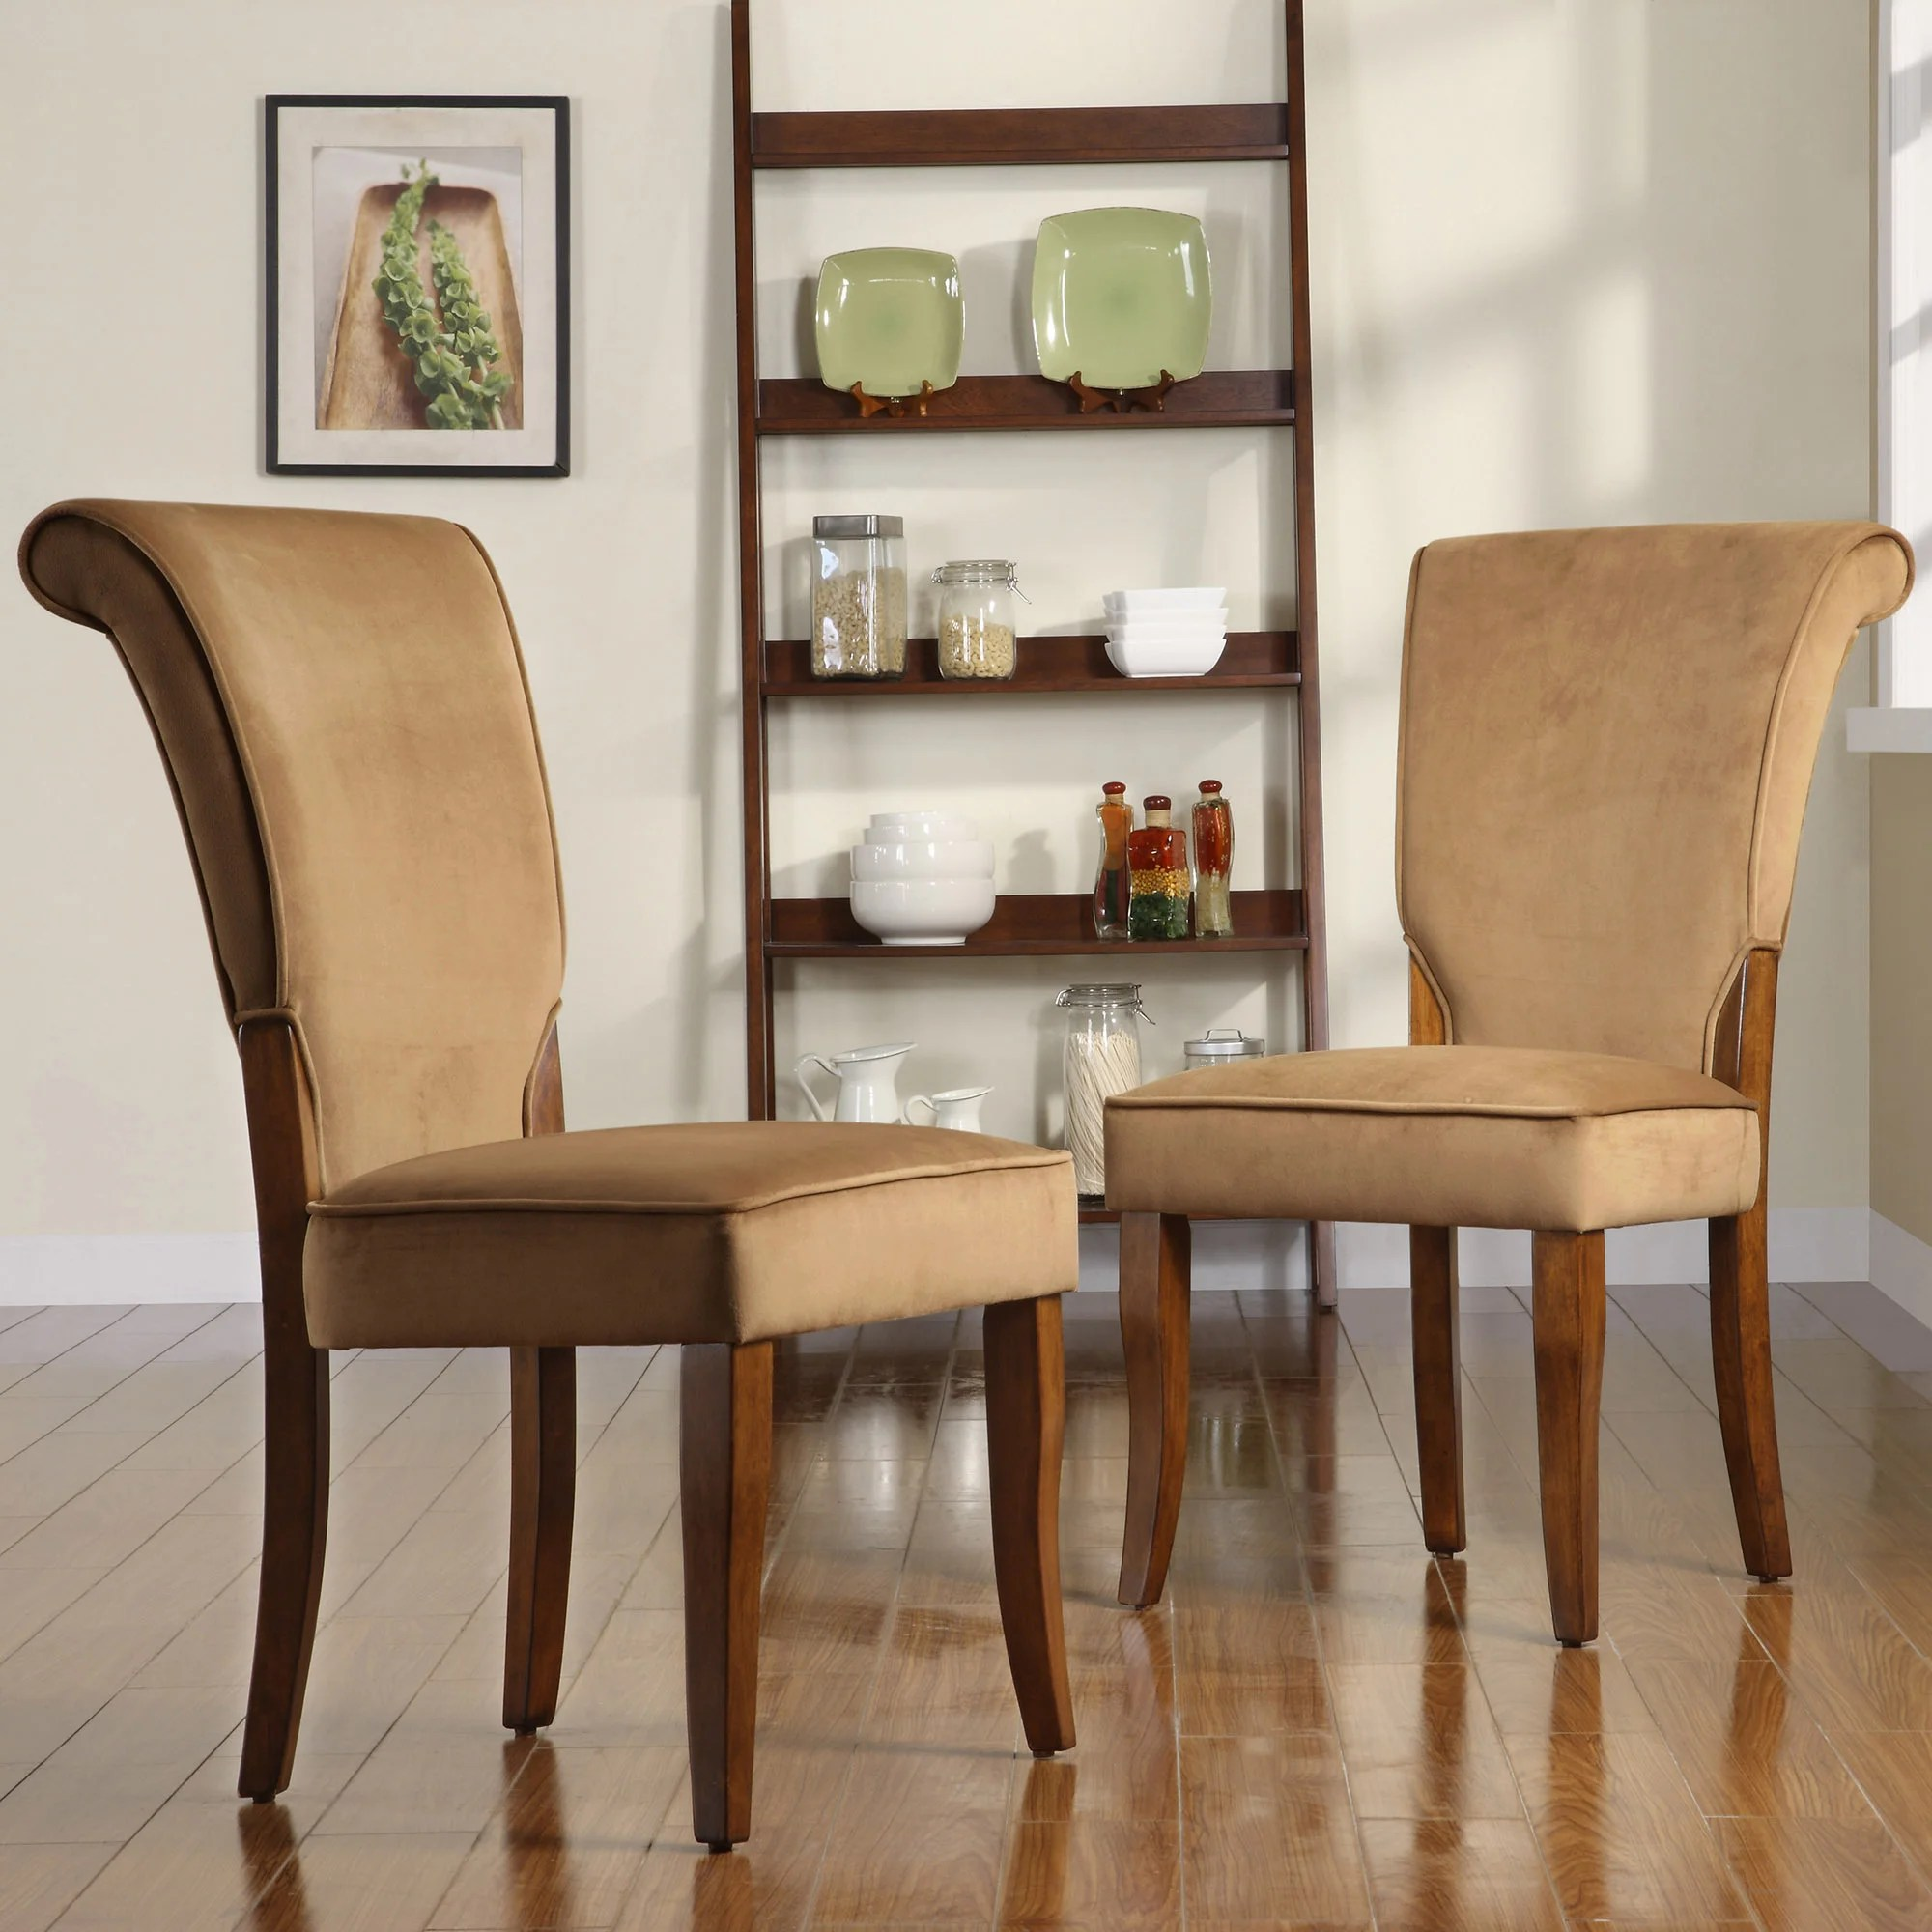 overstock com dining room chairs baby bjorn bouncy chair age tribecca home andorra peat velvet upholstered